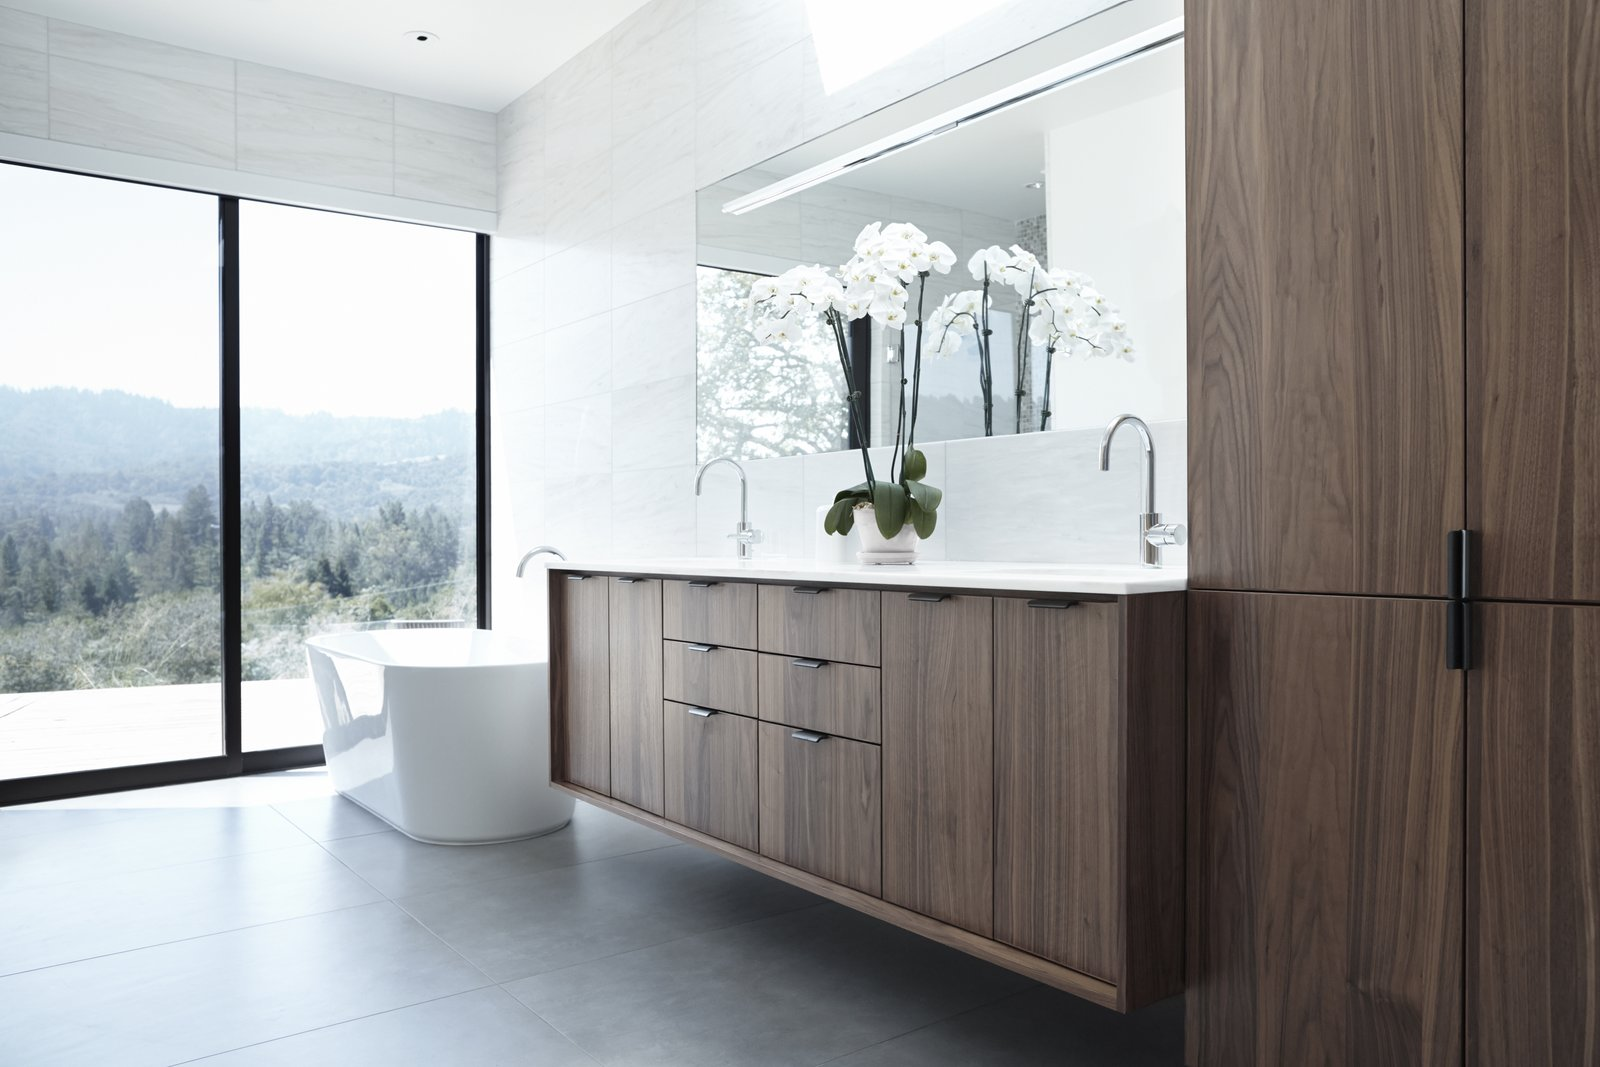 Henrybuilt upholds premium quality standards in craft, materials, and installation, producing furniture that will withstand use, especially in high-traffic areas such as the bathroom. Unique finishes contribute to durability.  Photo 5 of 9 in The Whole House System That Unifies Every Room